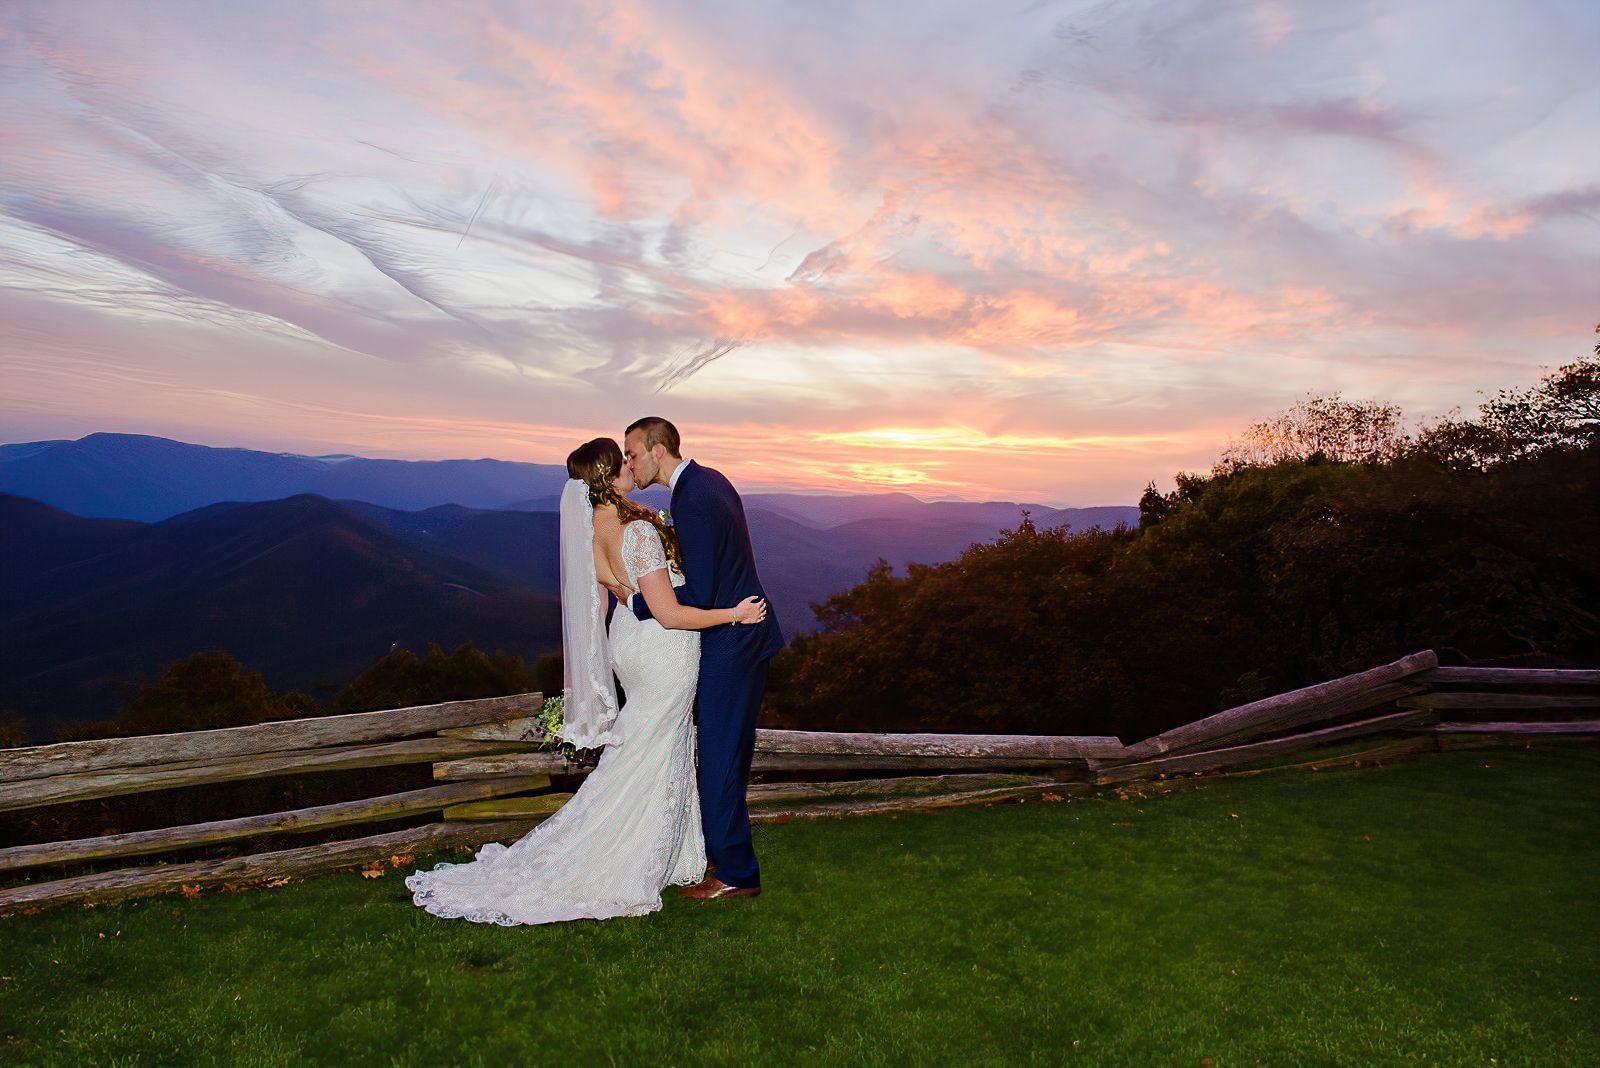 Sunset at Wintergreen Resort Destination Wedding